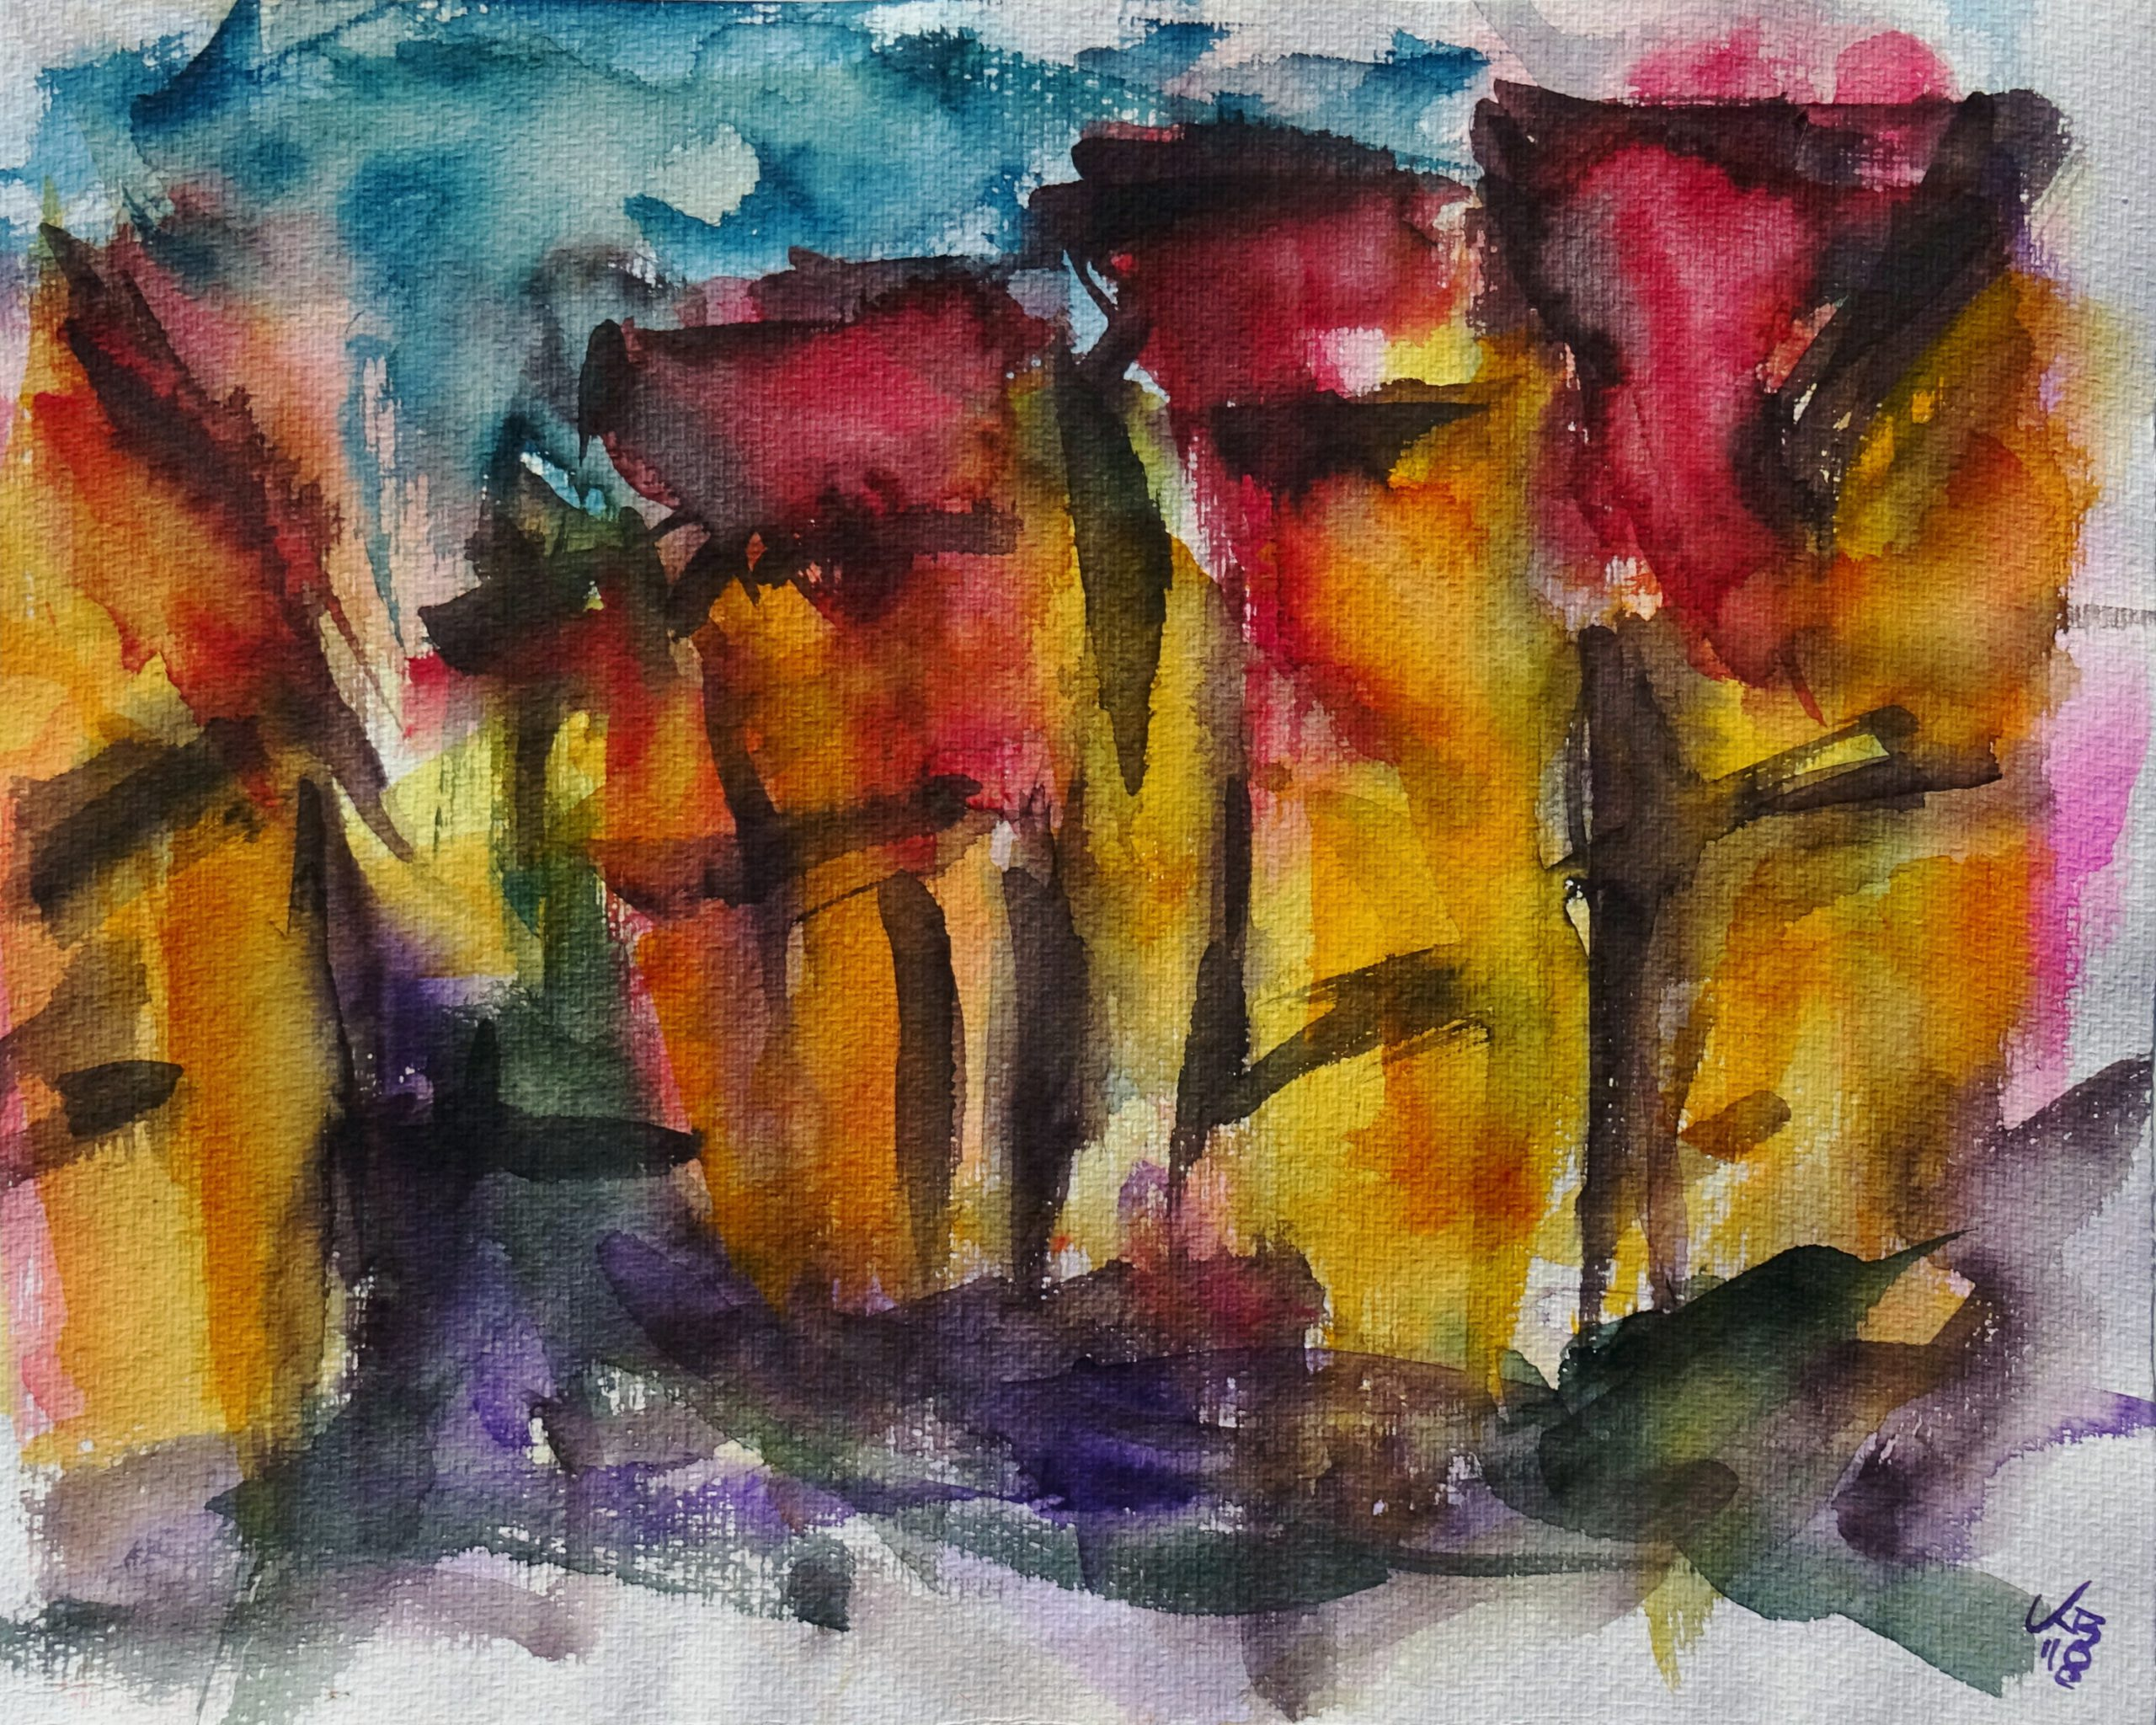 Marktgasse, Watercolour 50 x 40 cm, © 2018 by Klaus Bölling